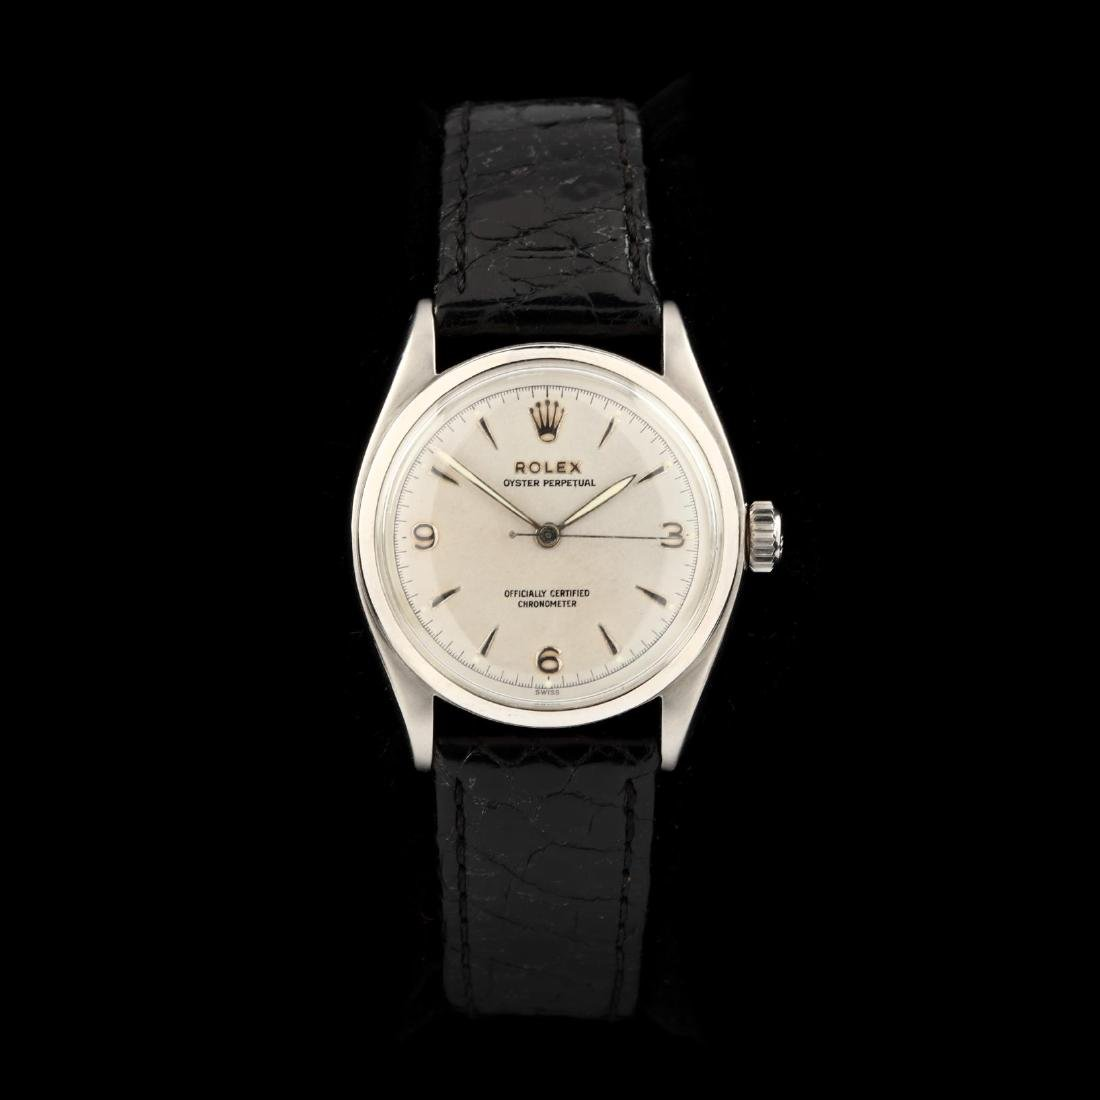 """Gent's Vintage """"Oyster Perpetual"""" Watch, Rolex"""